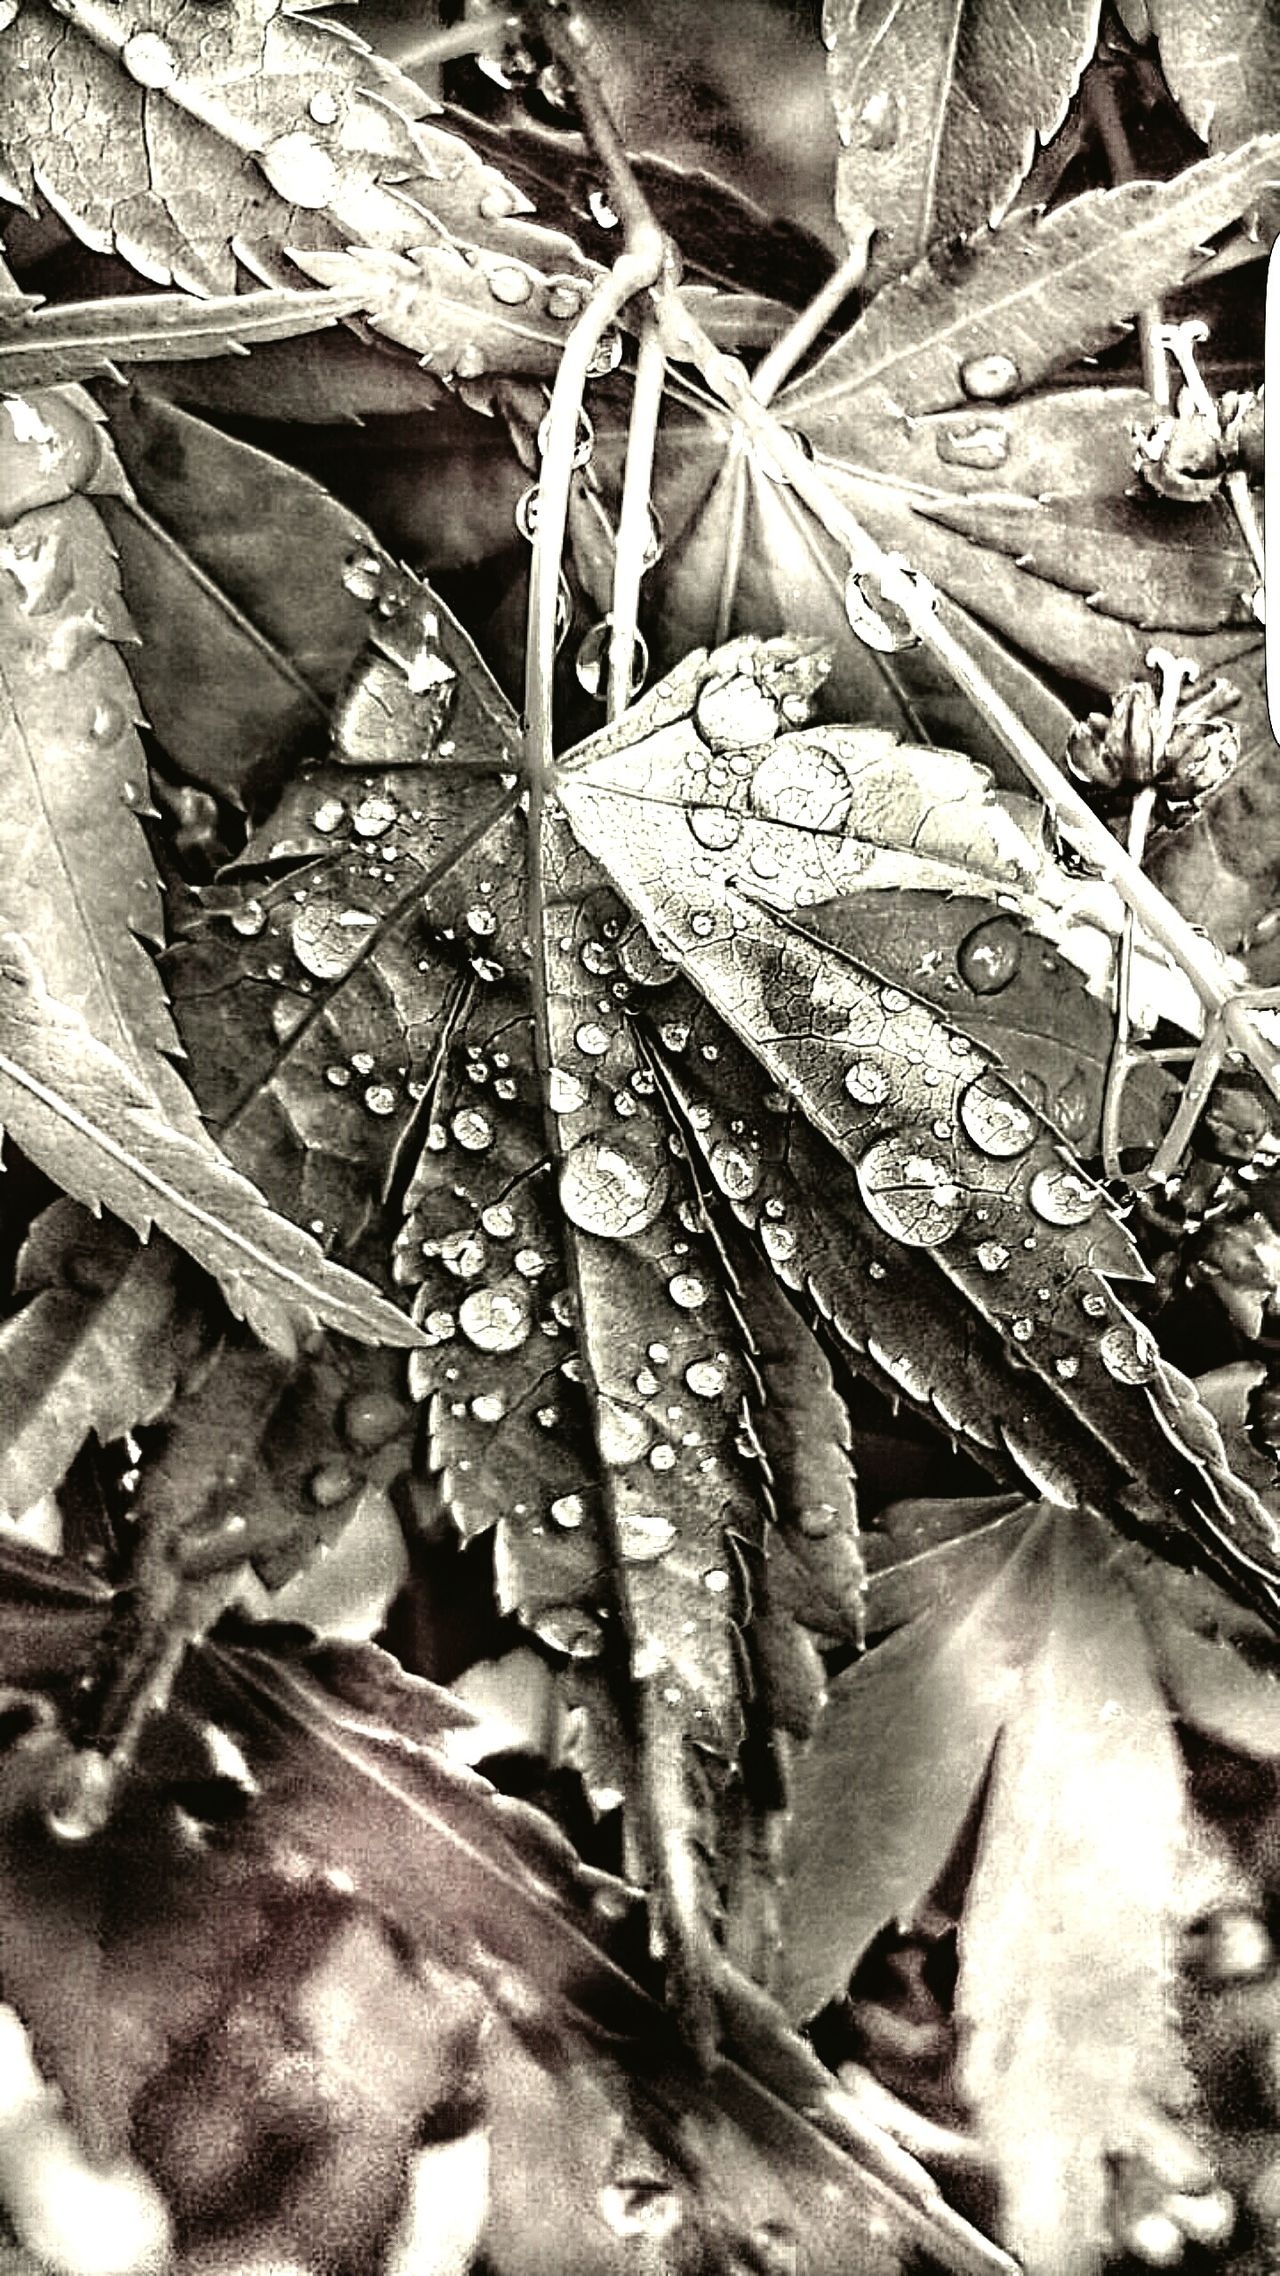 Bokeh Maple Leaf With Rain Drops Water Drops Leaf Drop Season  Water Wet Close-up RainDrop Leaf Vein Selective Focus Dew Fragility Nature Leaves Freshness Beauty In Nature Grayscale Old Photo Drastic Edit Perspective Personal Perspective